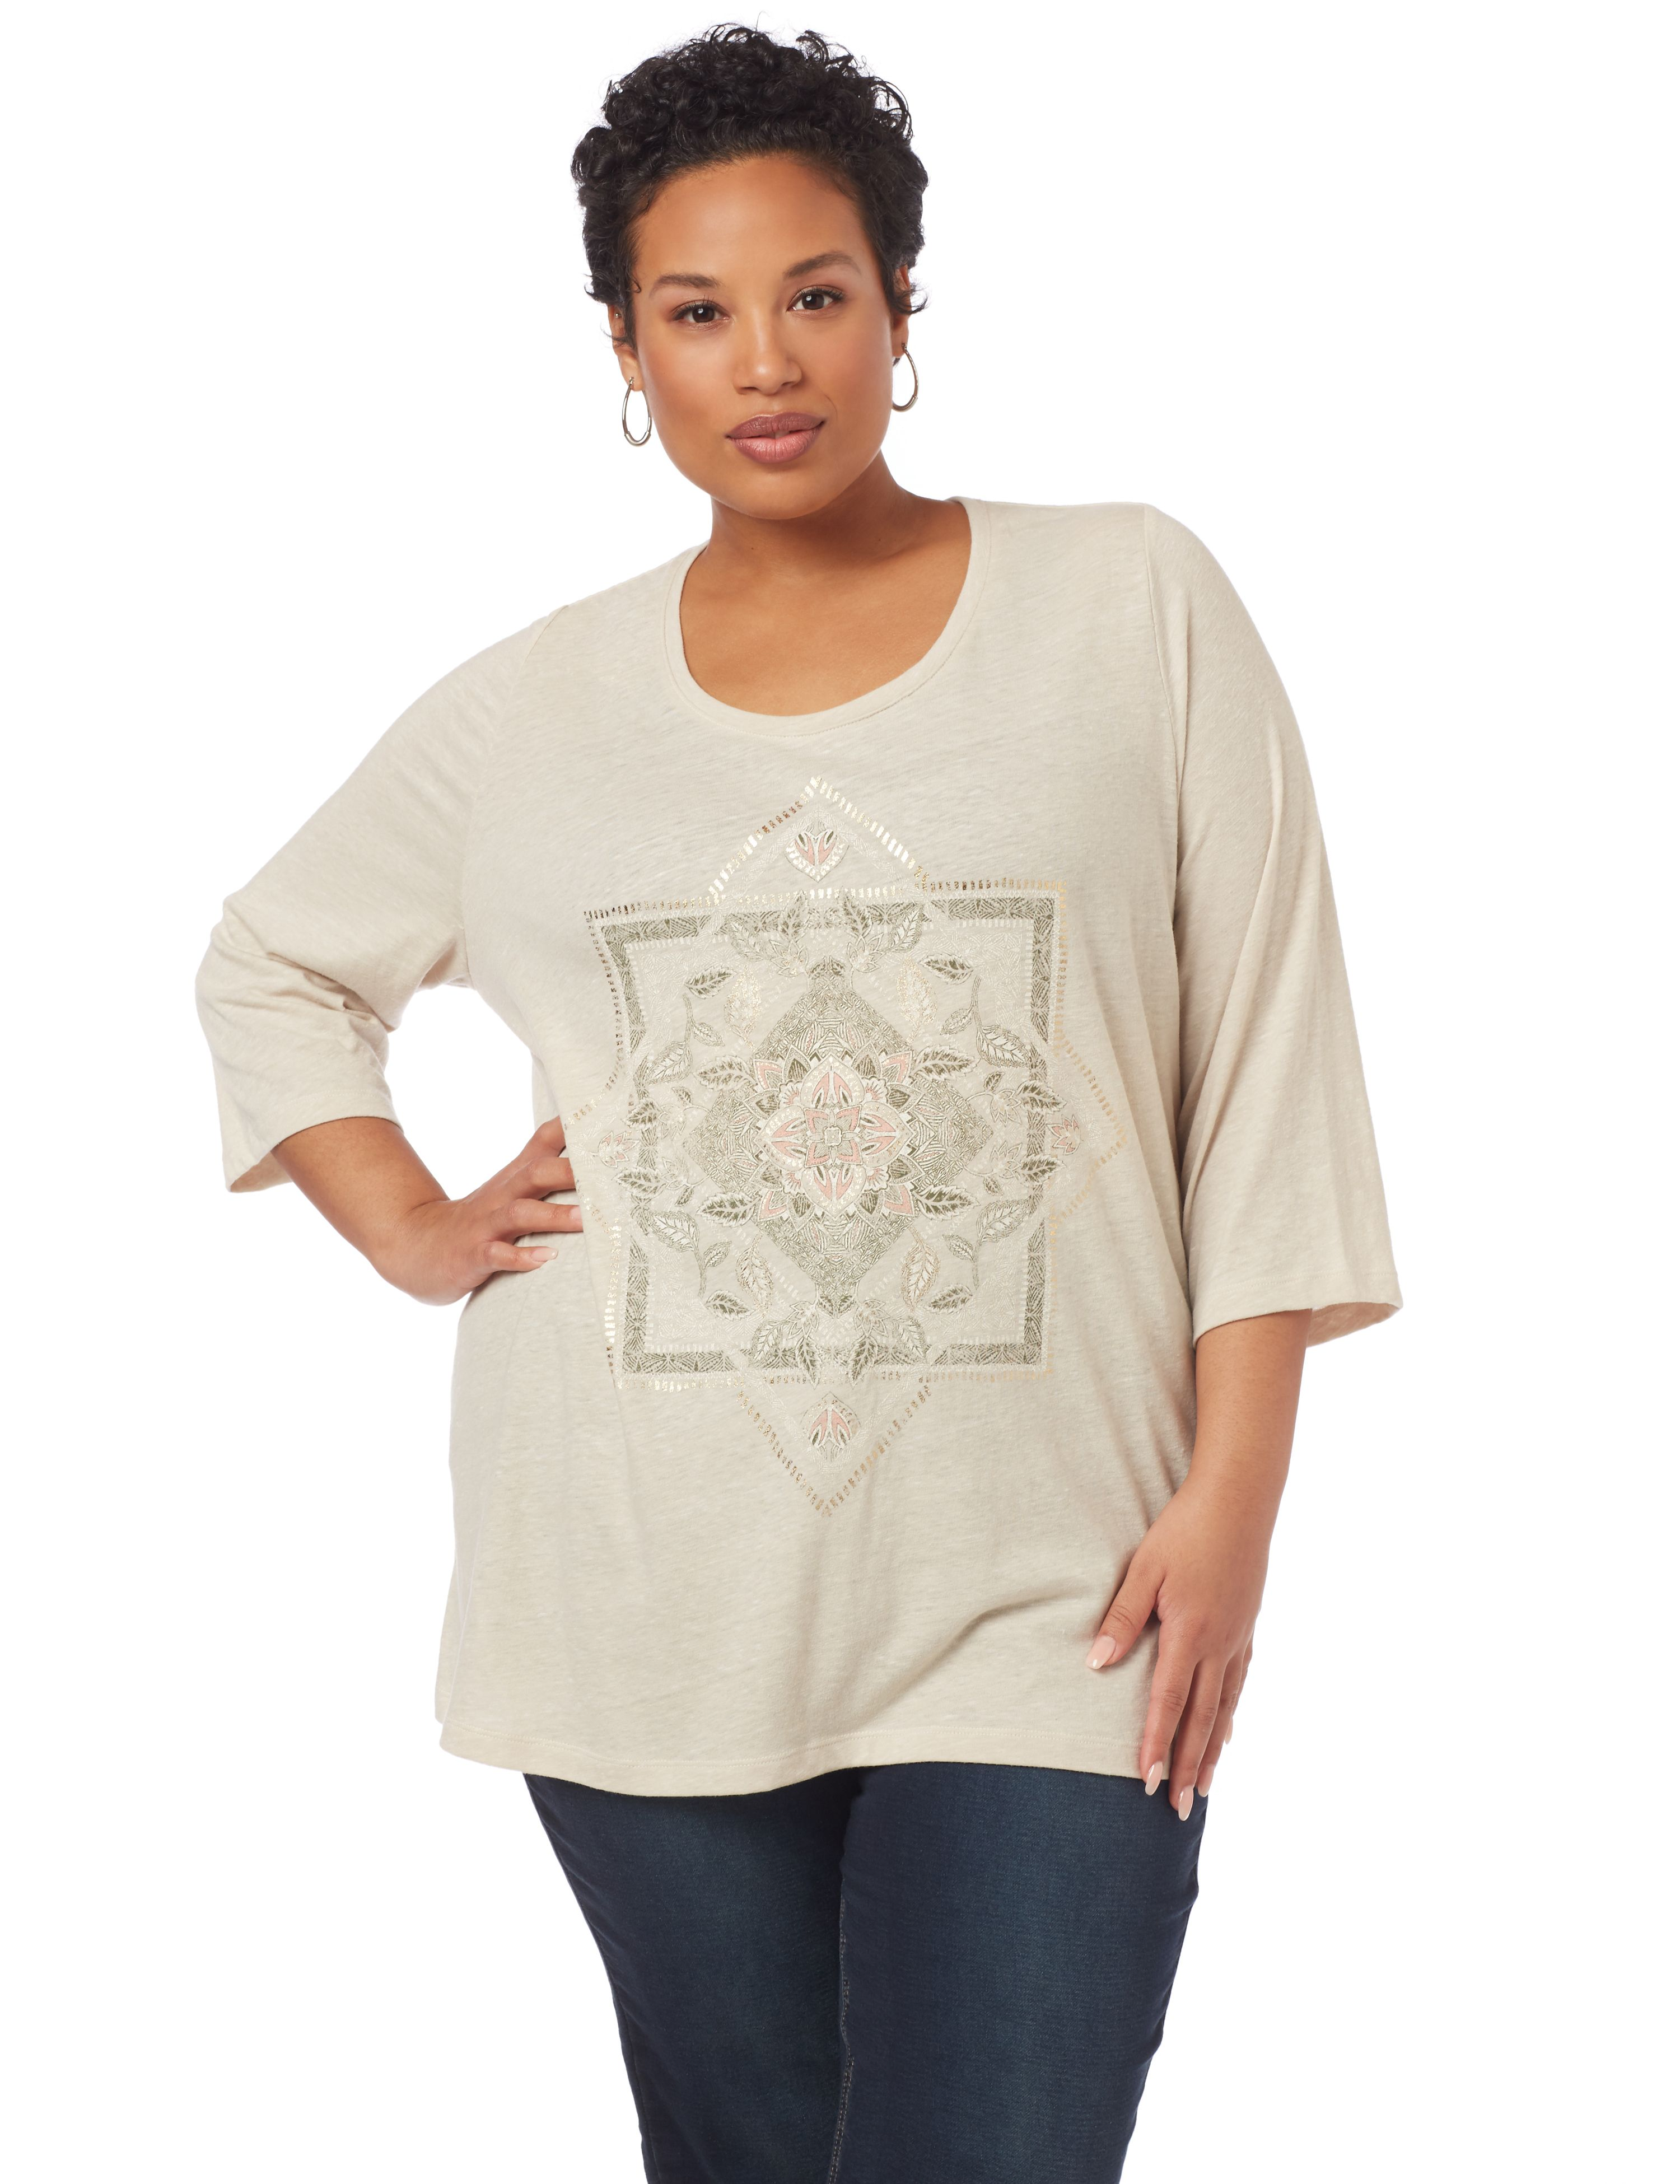 Stay Centered 3/4-Sleeve Top 1091104 SQUARE/TRIANGLE SCREEN MP-300094747